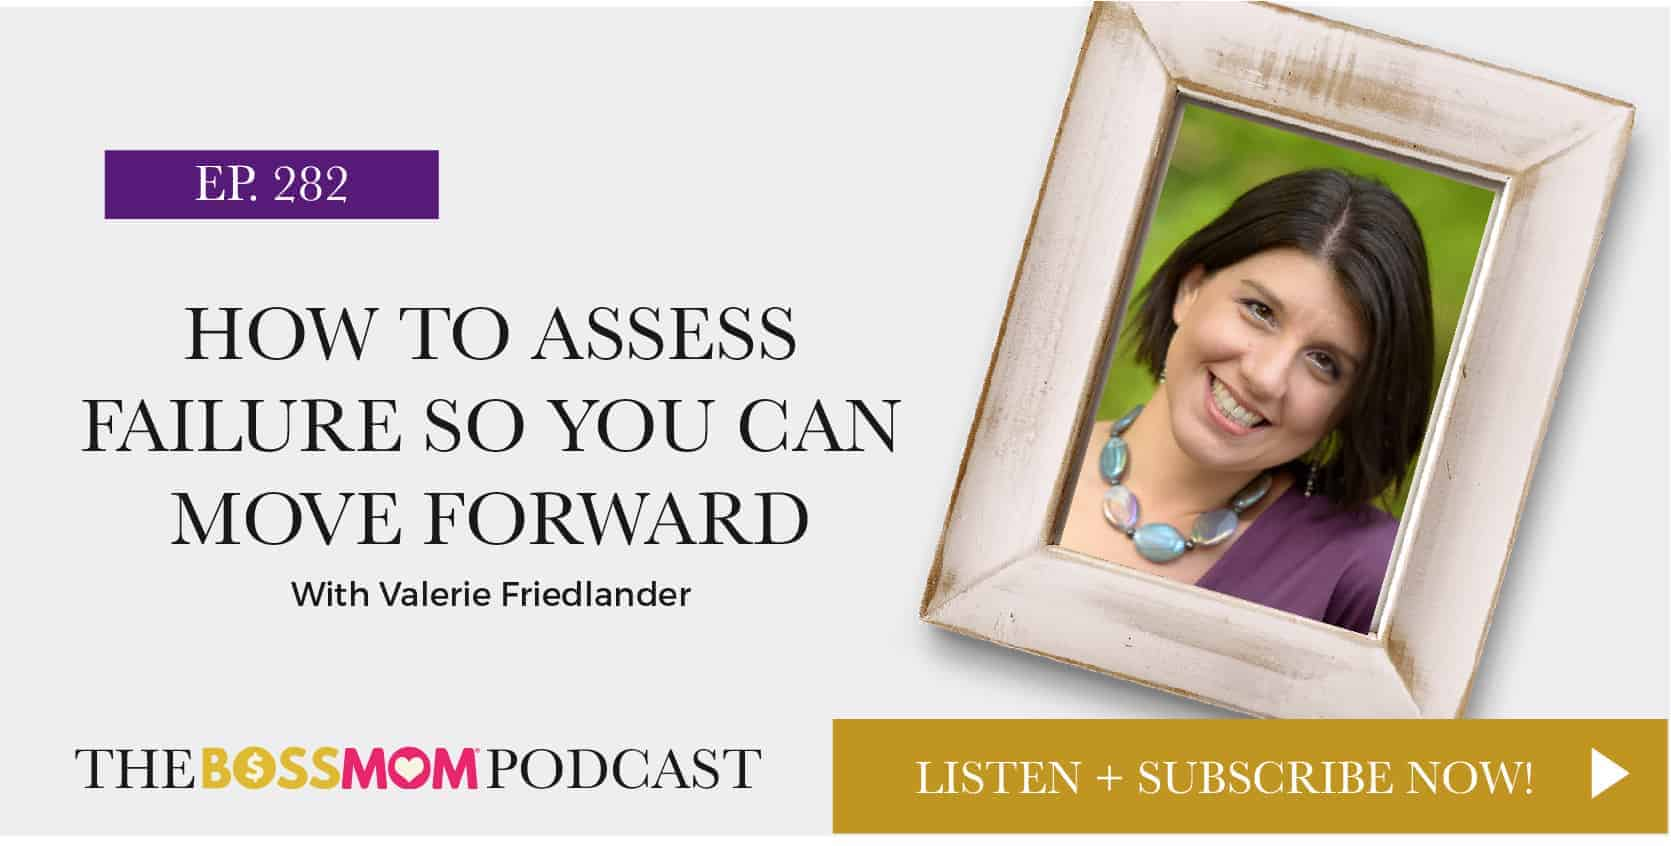 Episode 282: How to Assess Failure So You Can Move Forward with Valerie Friedlander